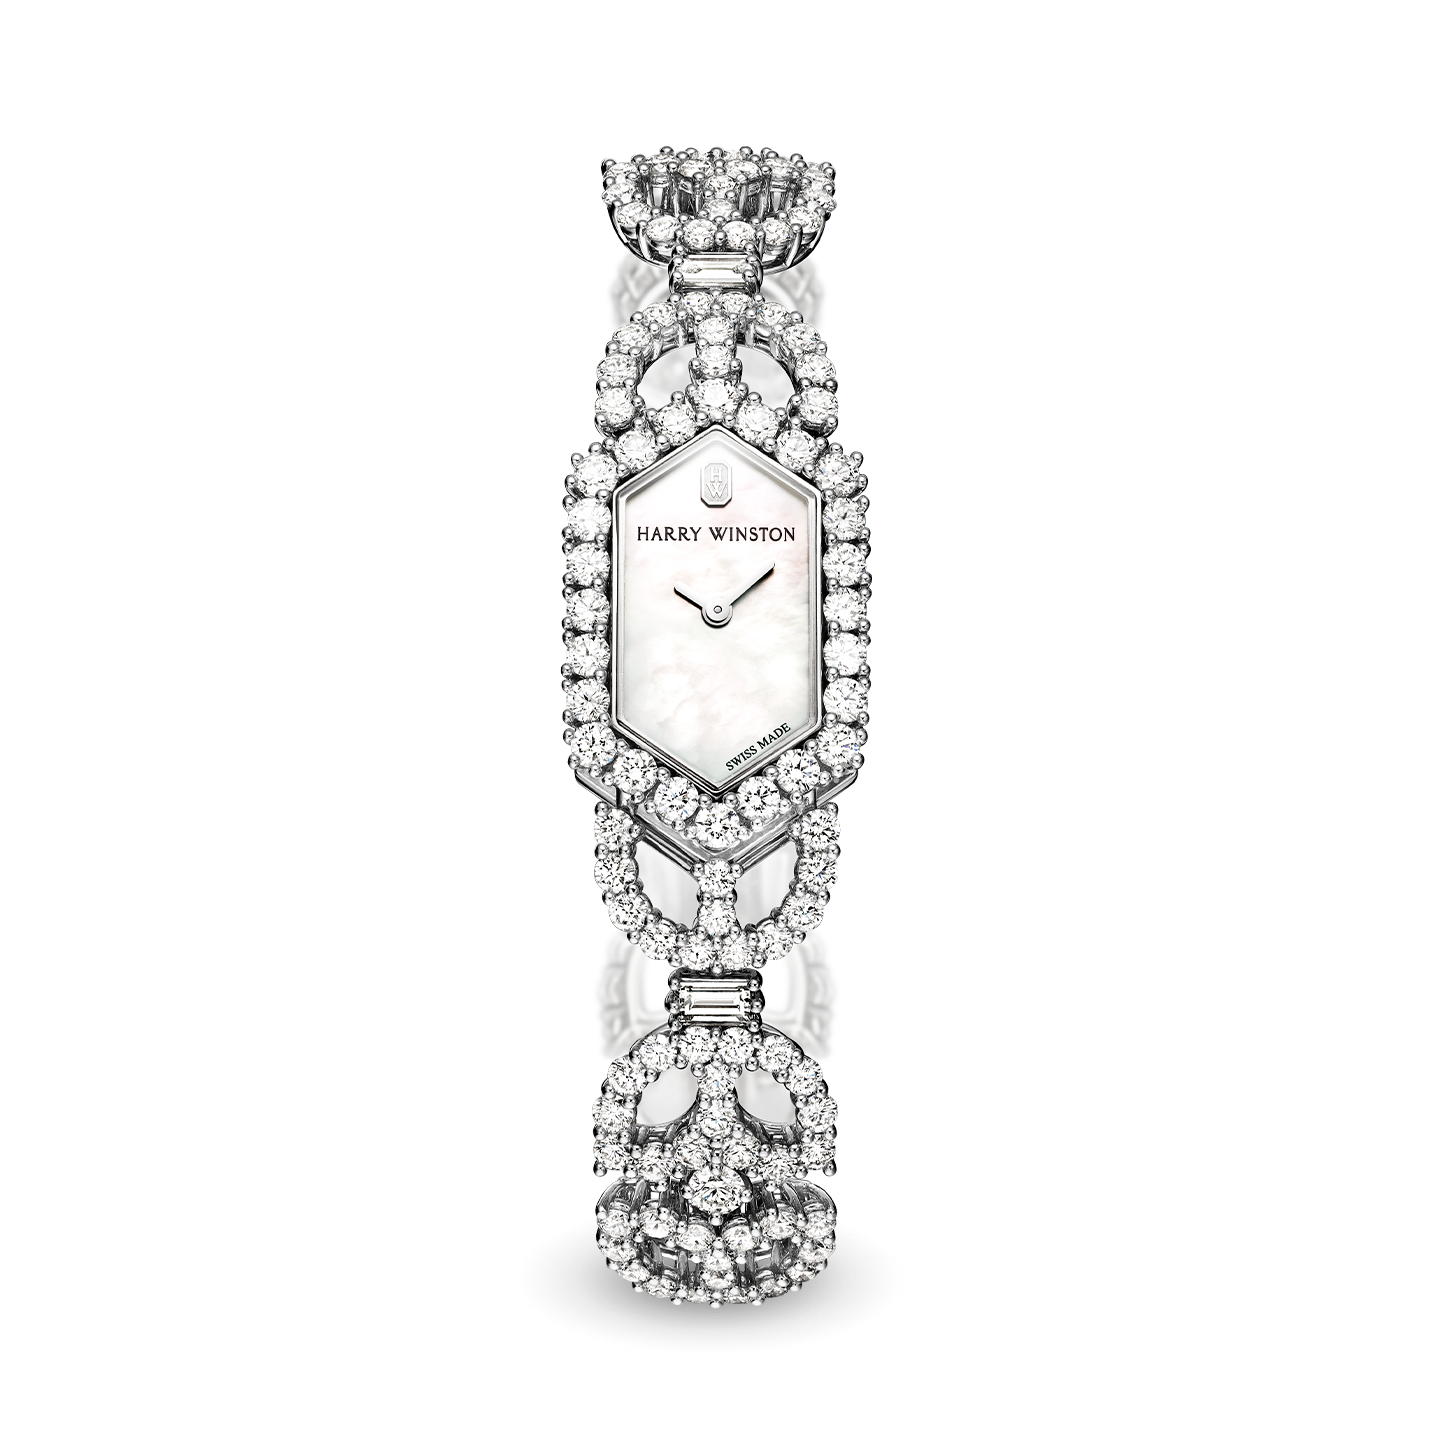 Art Deco by Harry Winston, product image 1